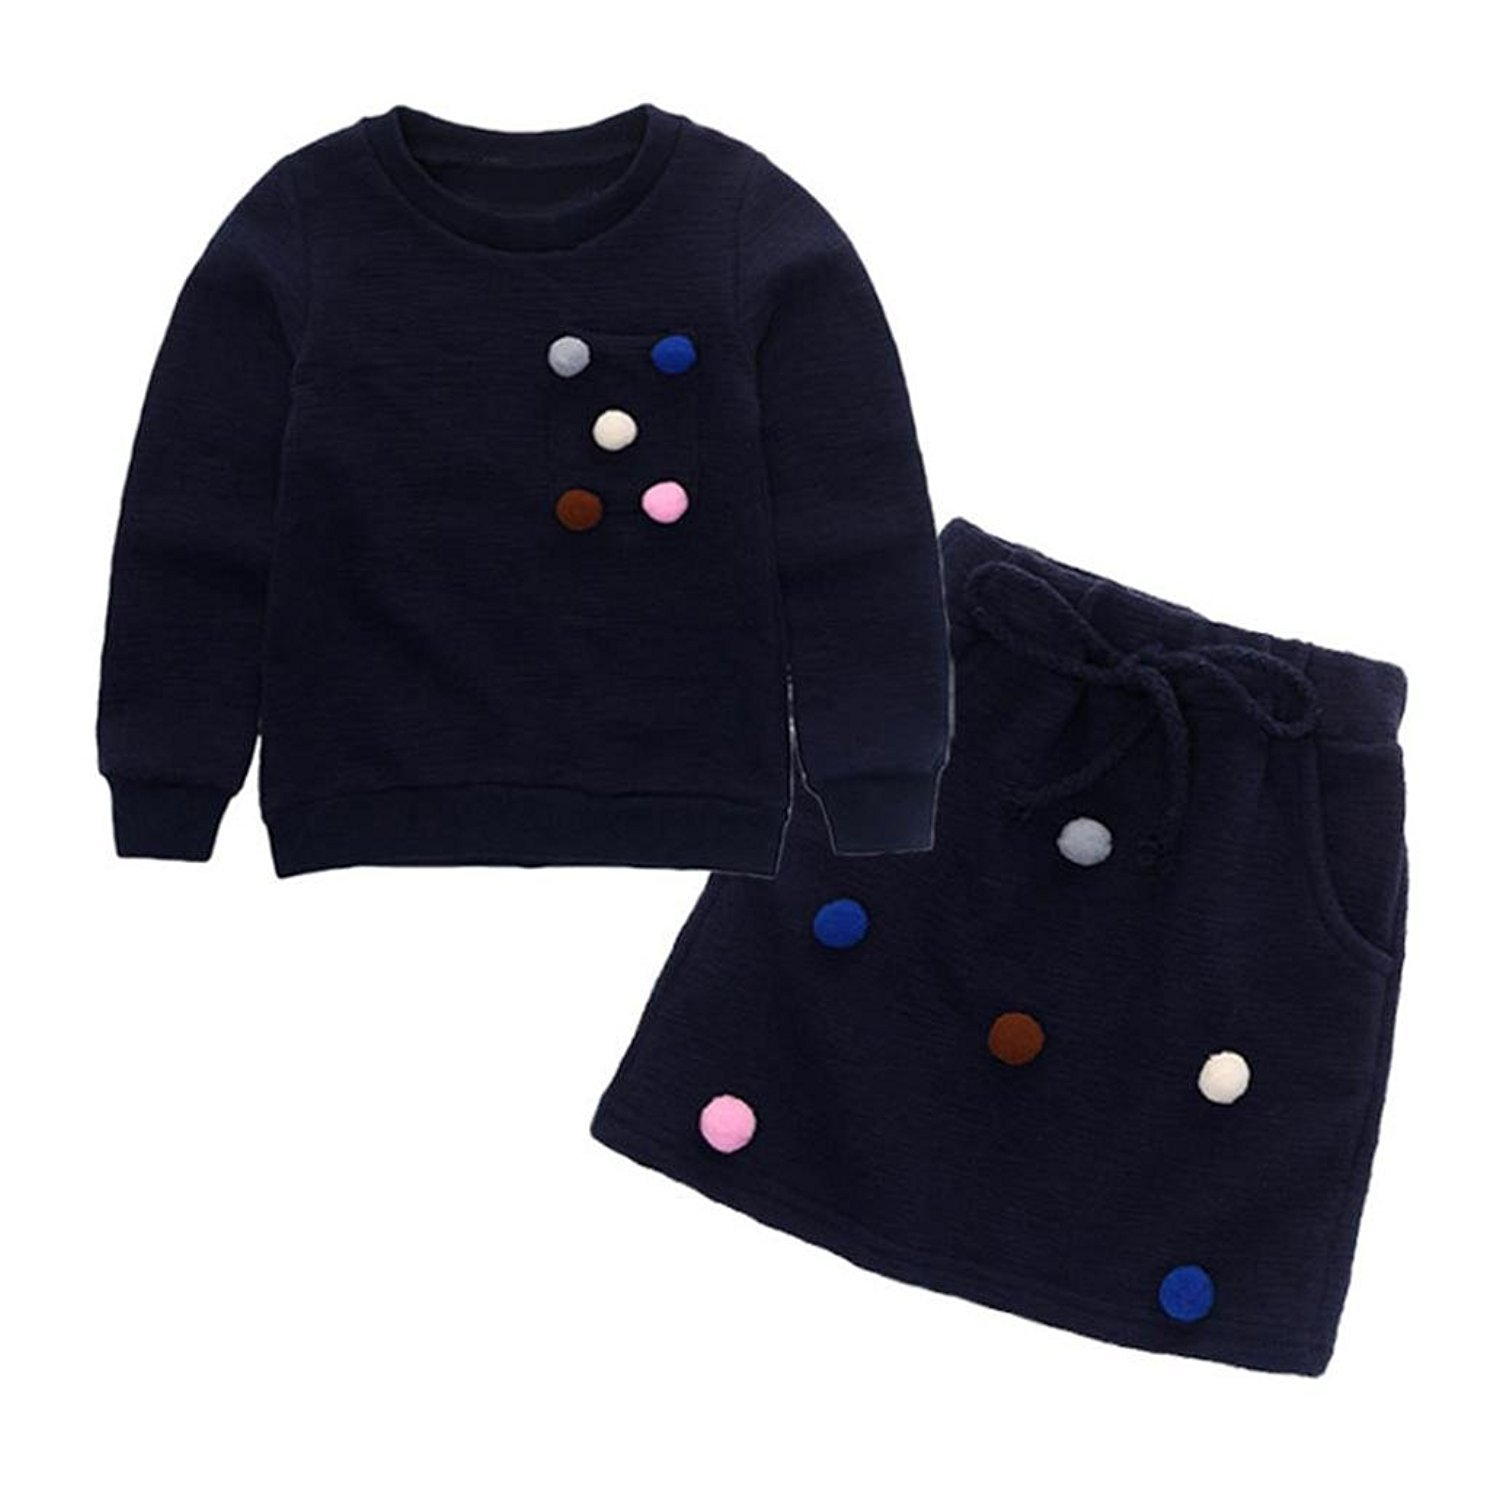 Webla Toddler Kids Girl Small Pom Pom Pullover Sweatshirt +Skirt Clothes Set For 2-7 Years Old